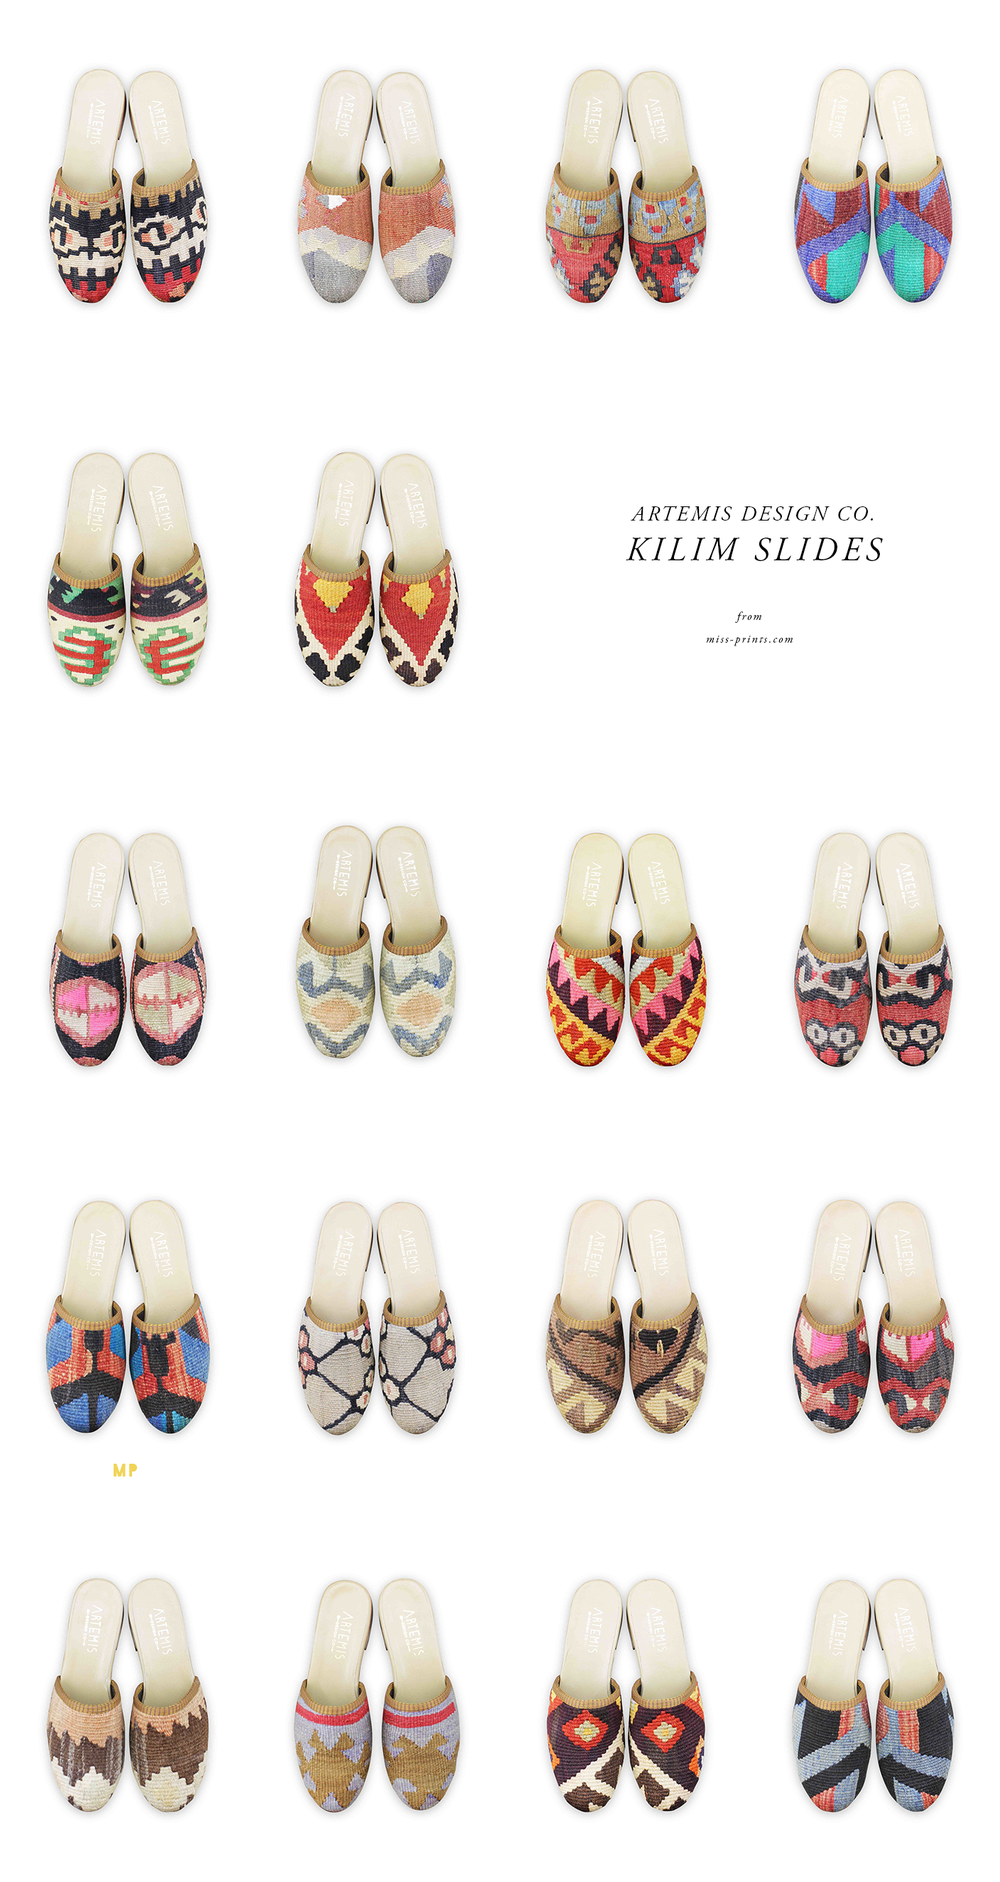 artemis design co mules / @themissprints